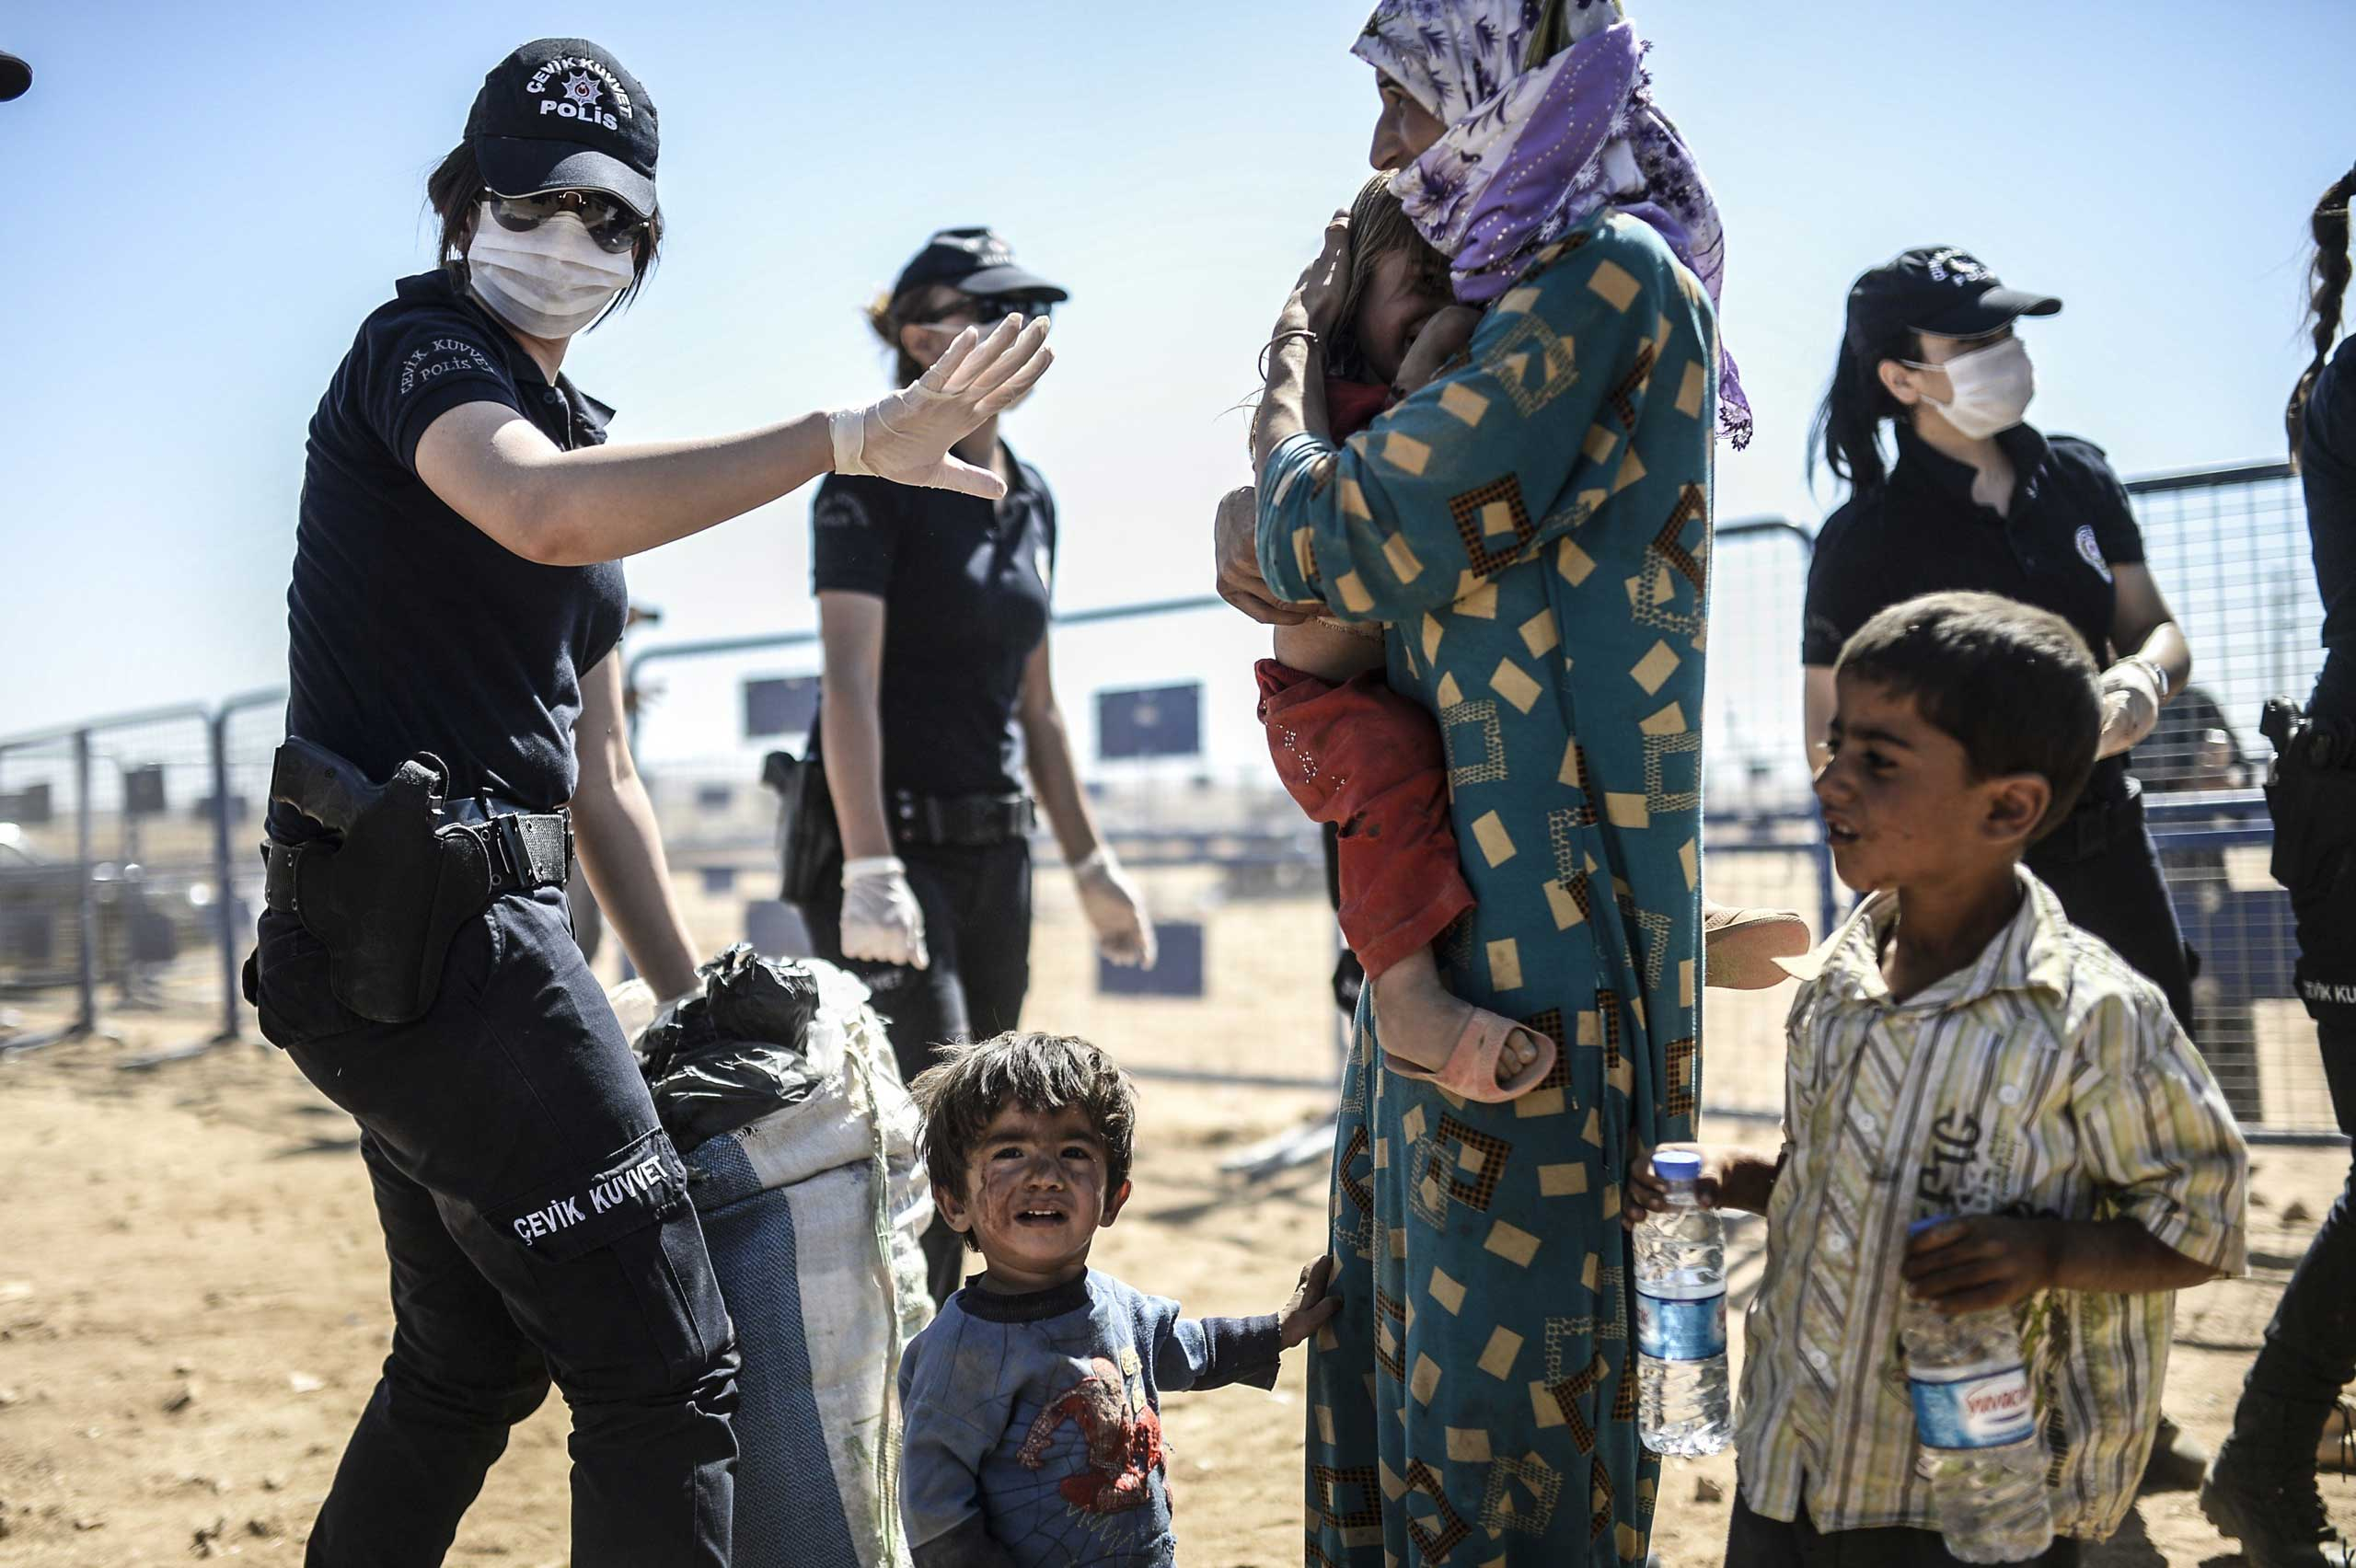 A Turkish police officer gestures as they screen Syrian Kurds crossing the border between Syria and Turkey at the southeastern town of Suruc in Sanliurfa province on Sept. 23, 2014.